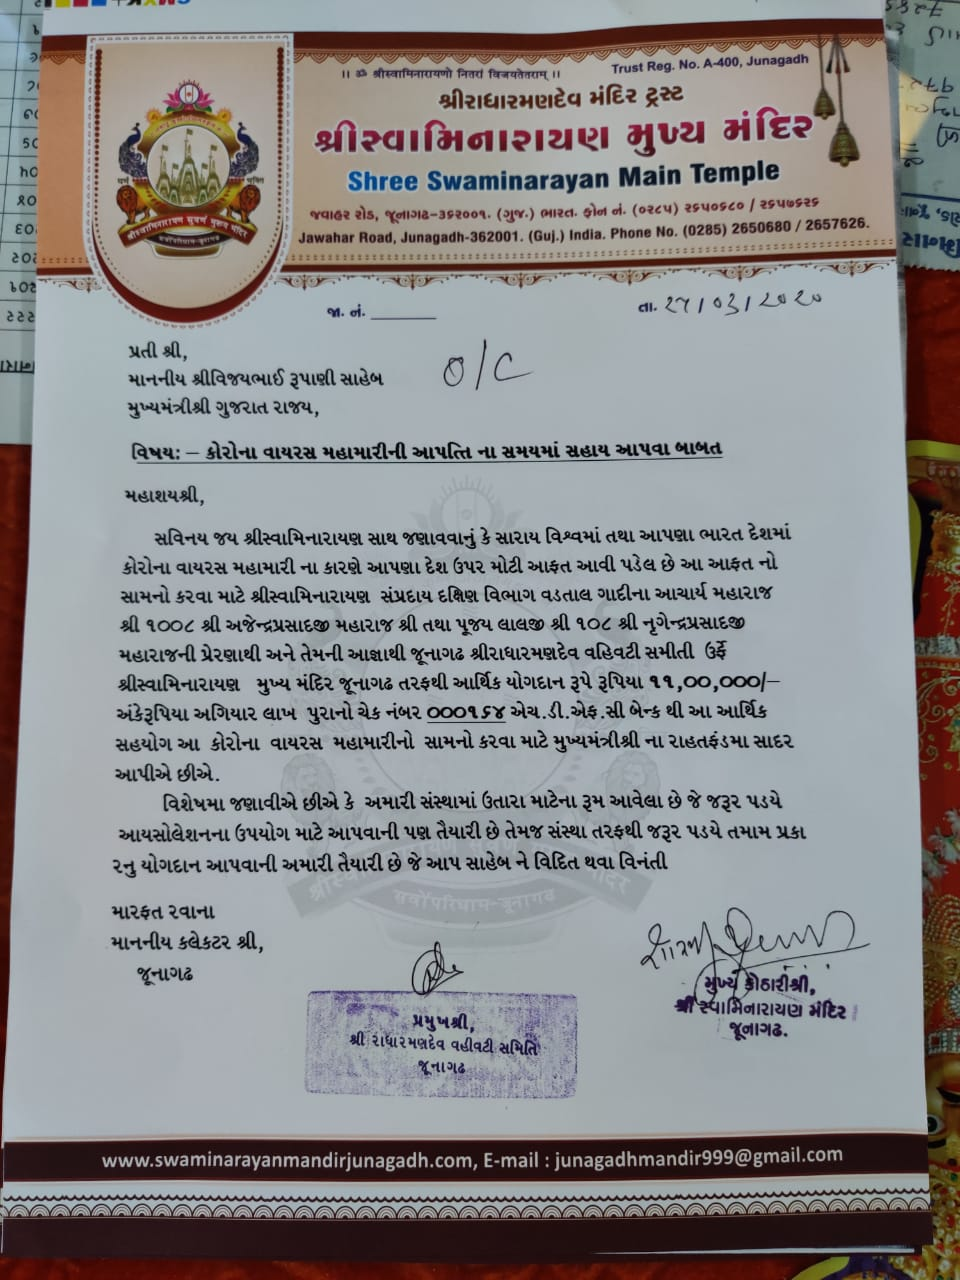 Swaminarayan Mandir Junagadh has contributed Rs. 11 lakh in the Chief Minister Relief Fund. for Covid 19 relief work was deposited 2